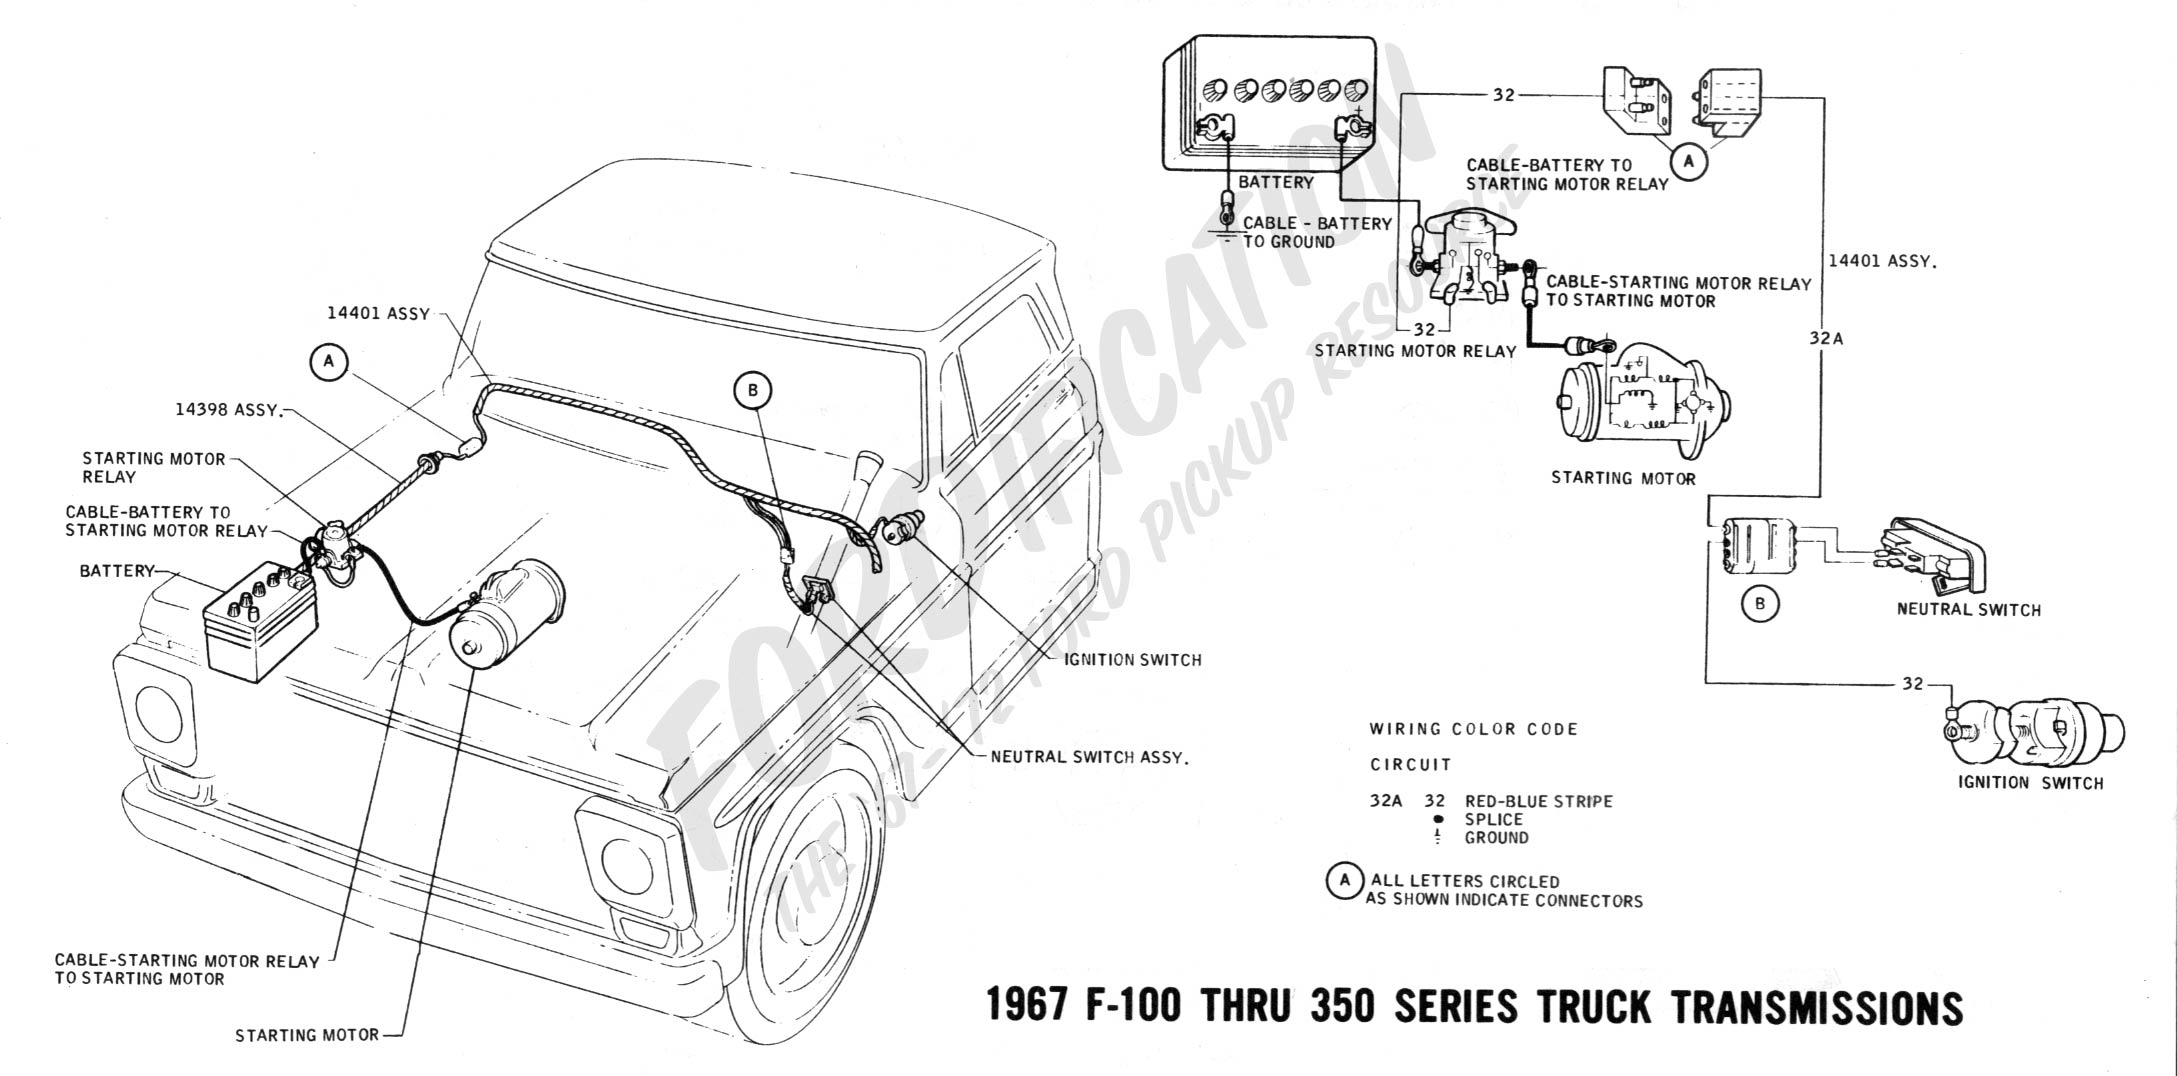 1967 Ford F 250 Wiring Diagram Manual E Books 1960 Thunderbird Relay Ranger Fuel Pump Circuit Electrical Problemsolenoid Diagrams And